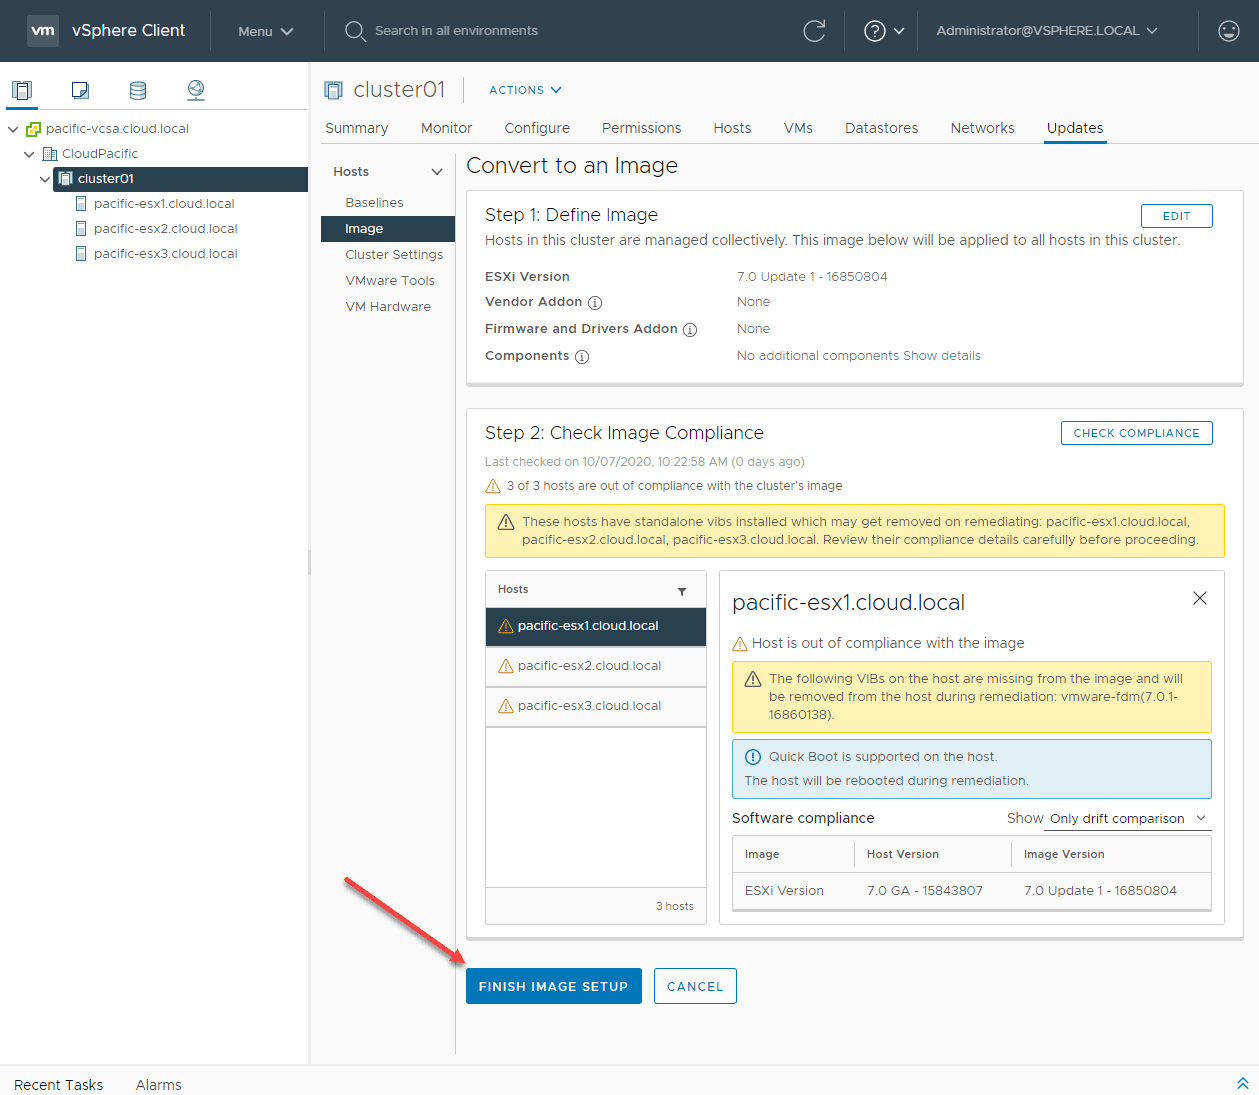 Finish-image-setup-in-vSphere-Lifecycle-Manager Upgrade to ESXi 7 Update 1 using vSphere Lifecycle Manager VLCM